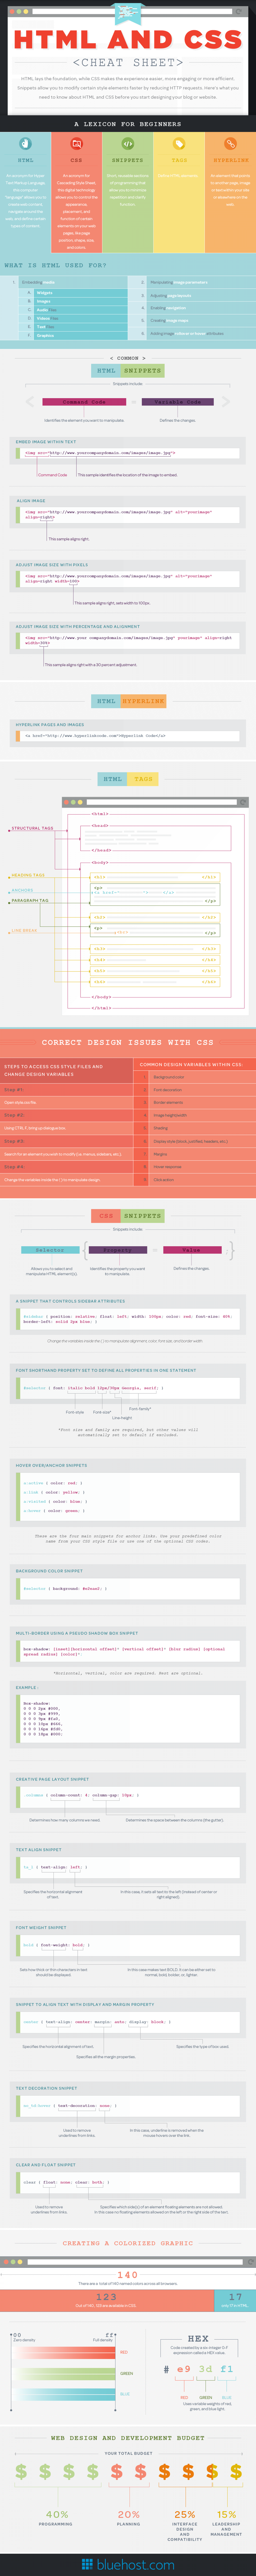 HTML and CSS Cheat Sheet Infographic